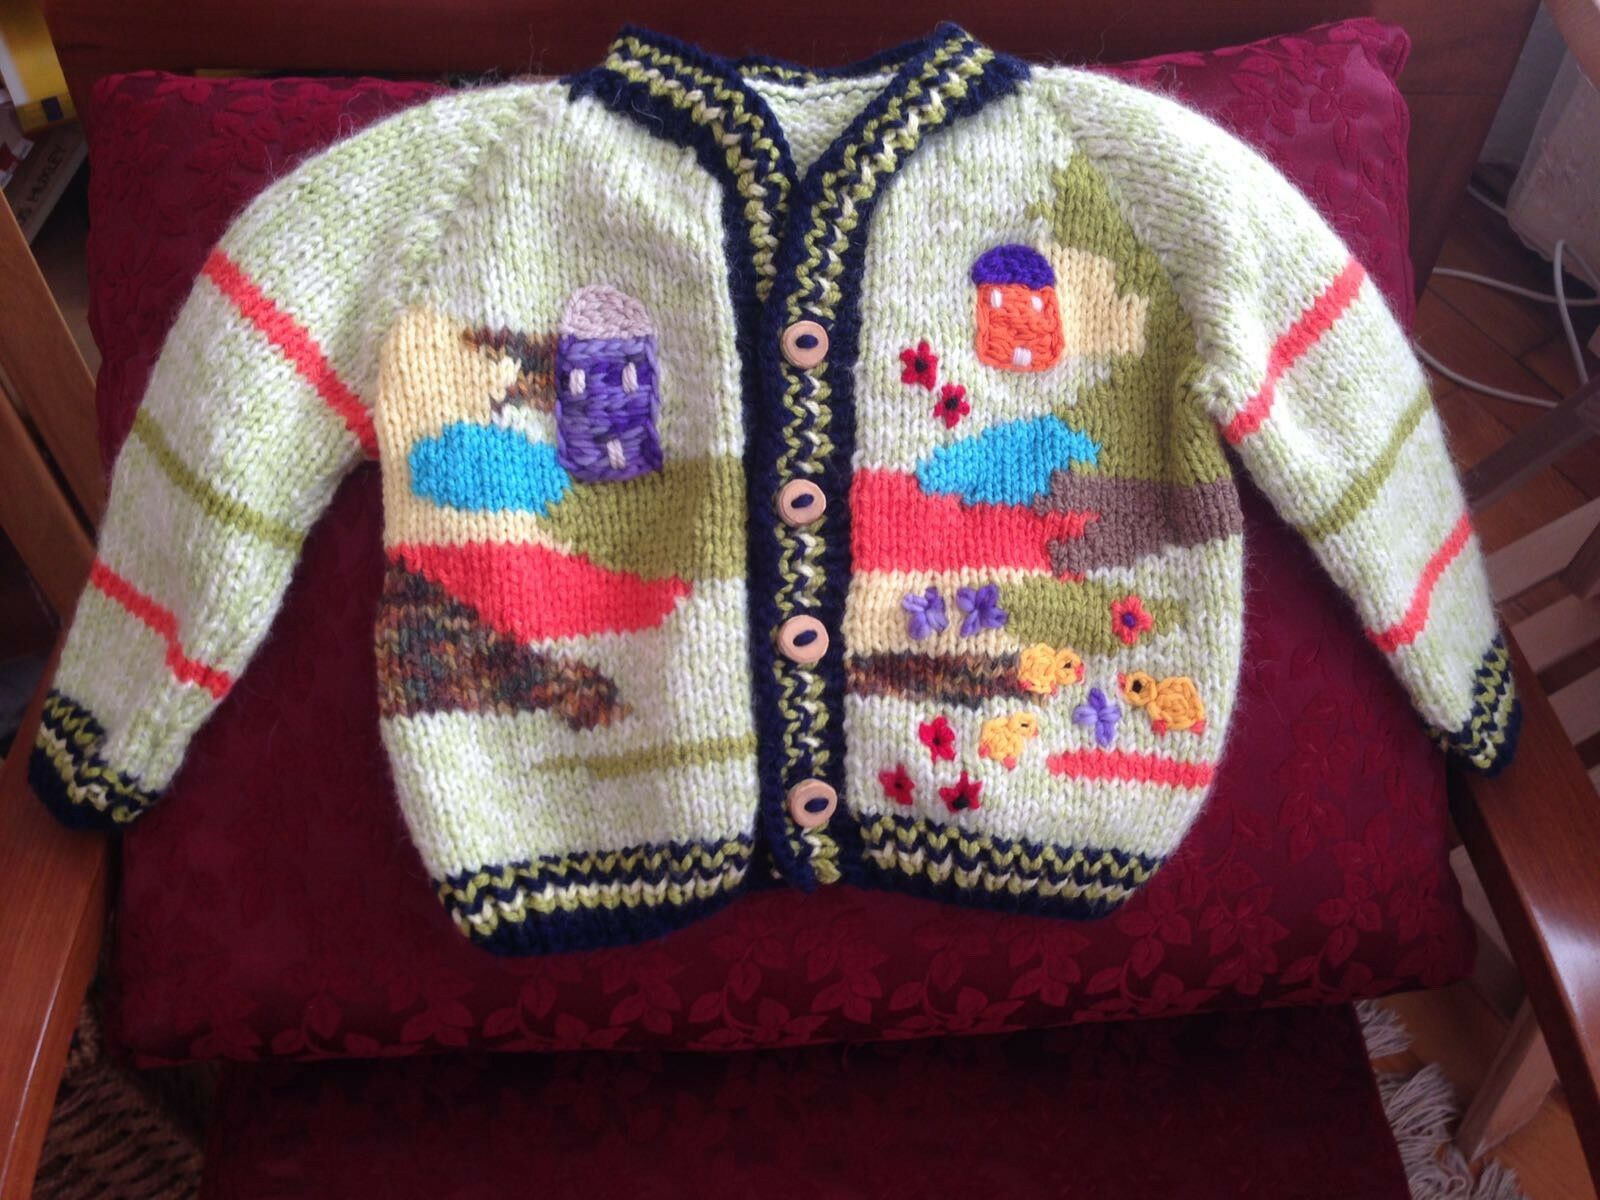 Handmade Wool Sweater For Kids (with characters from fairy tales and stories)